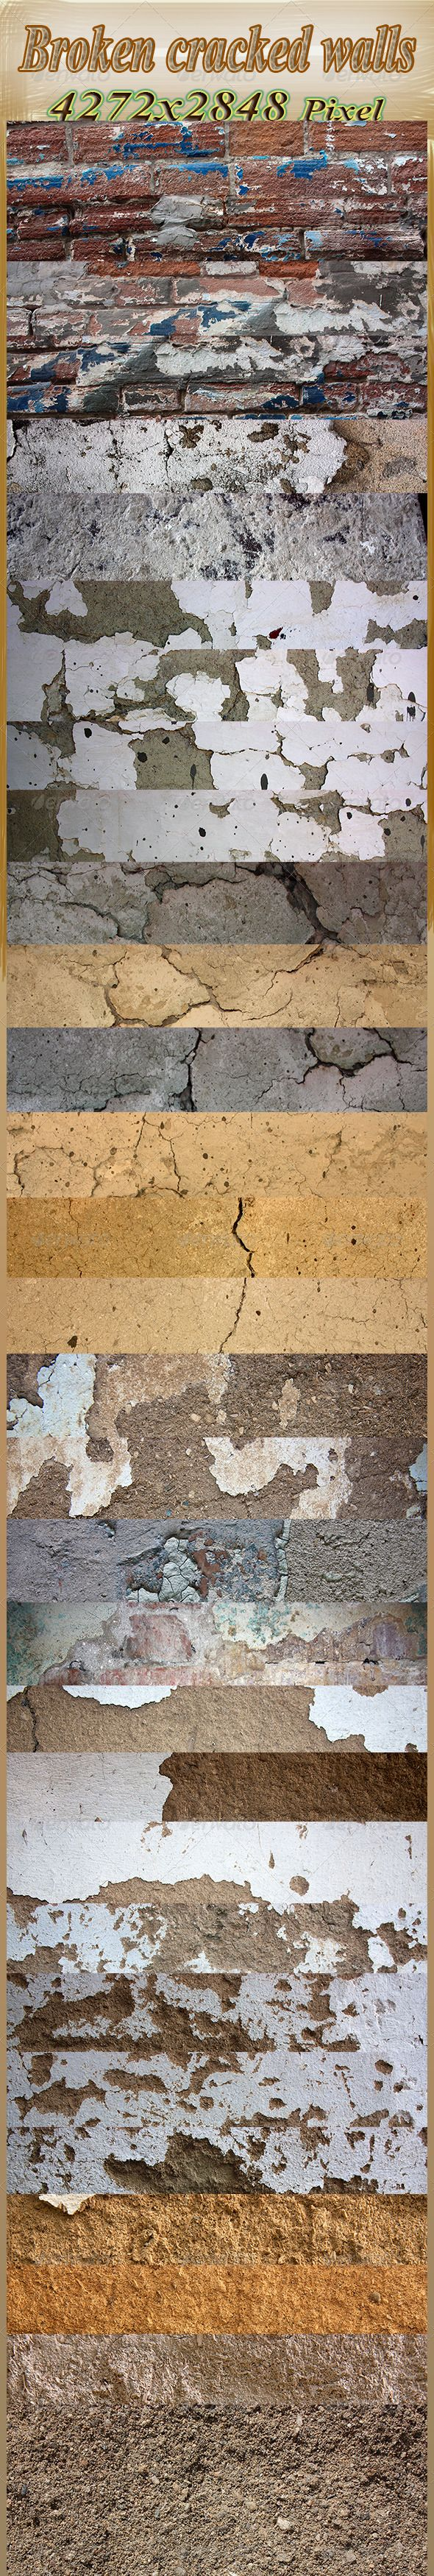 Broken Old Walls, Cracked and Broken  #GraphicRiver         Set of 32 Broken, Cracked walls textures.  	 The textures are 4272×2848  	 The textures have been shot in plain day light for better detail capture and focus of the subject.     Created: 16October12 GraphicsFilesIncluded: JPGImage Layered: No MinimumAdobeCSVersion: CS PixelDimensions: 4272x2848 Tileable: No Tags: brick #clay #crack #cracked #dirt #earth #grey #grime #grunge #macro #noise #paint #rift #rough #sand #sawdust #spray…